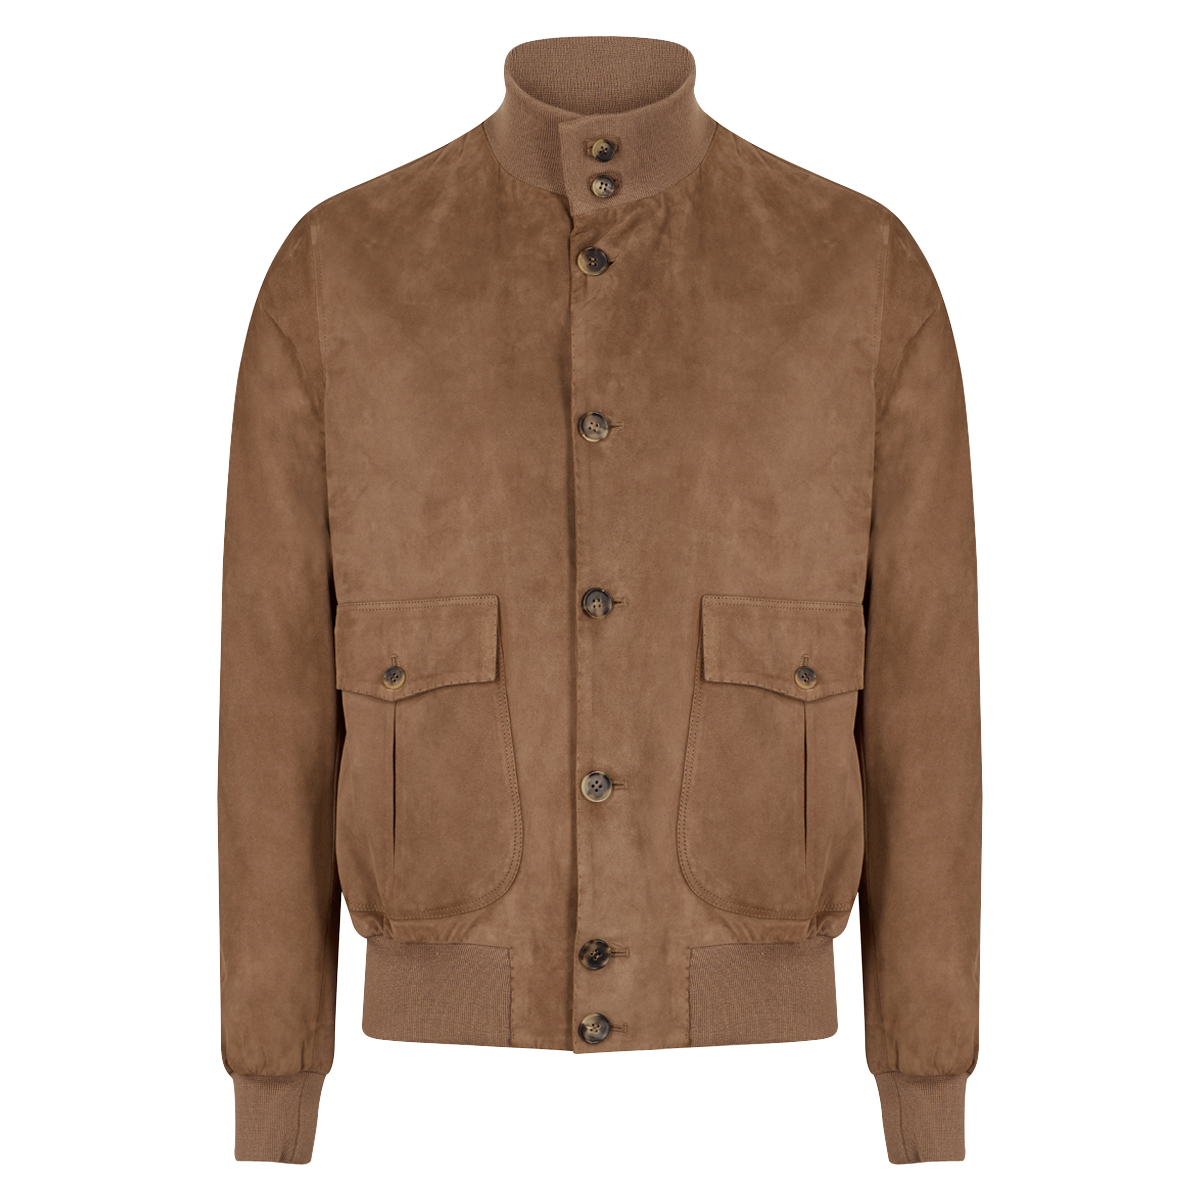 Light Brown Suede A1 Jacket